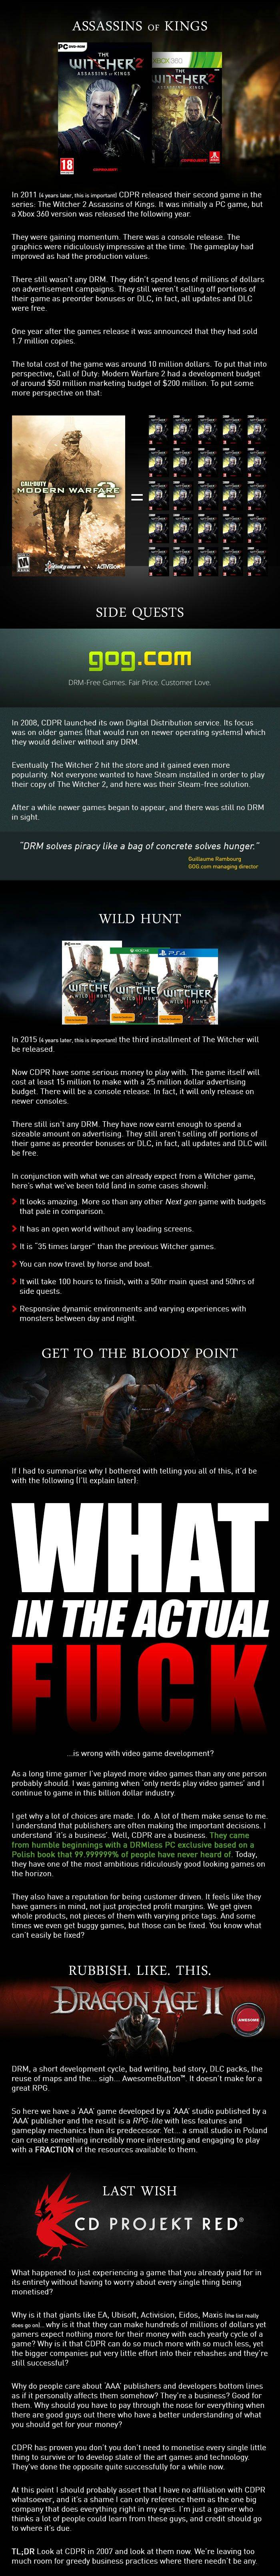 witcher-story-2